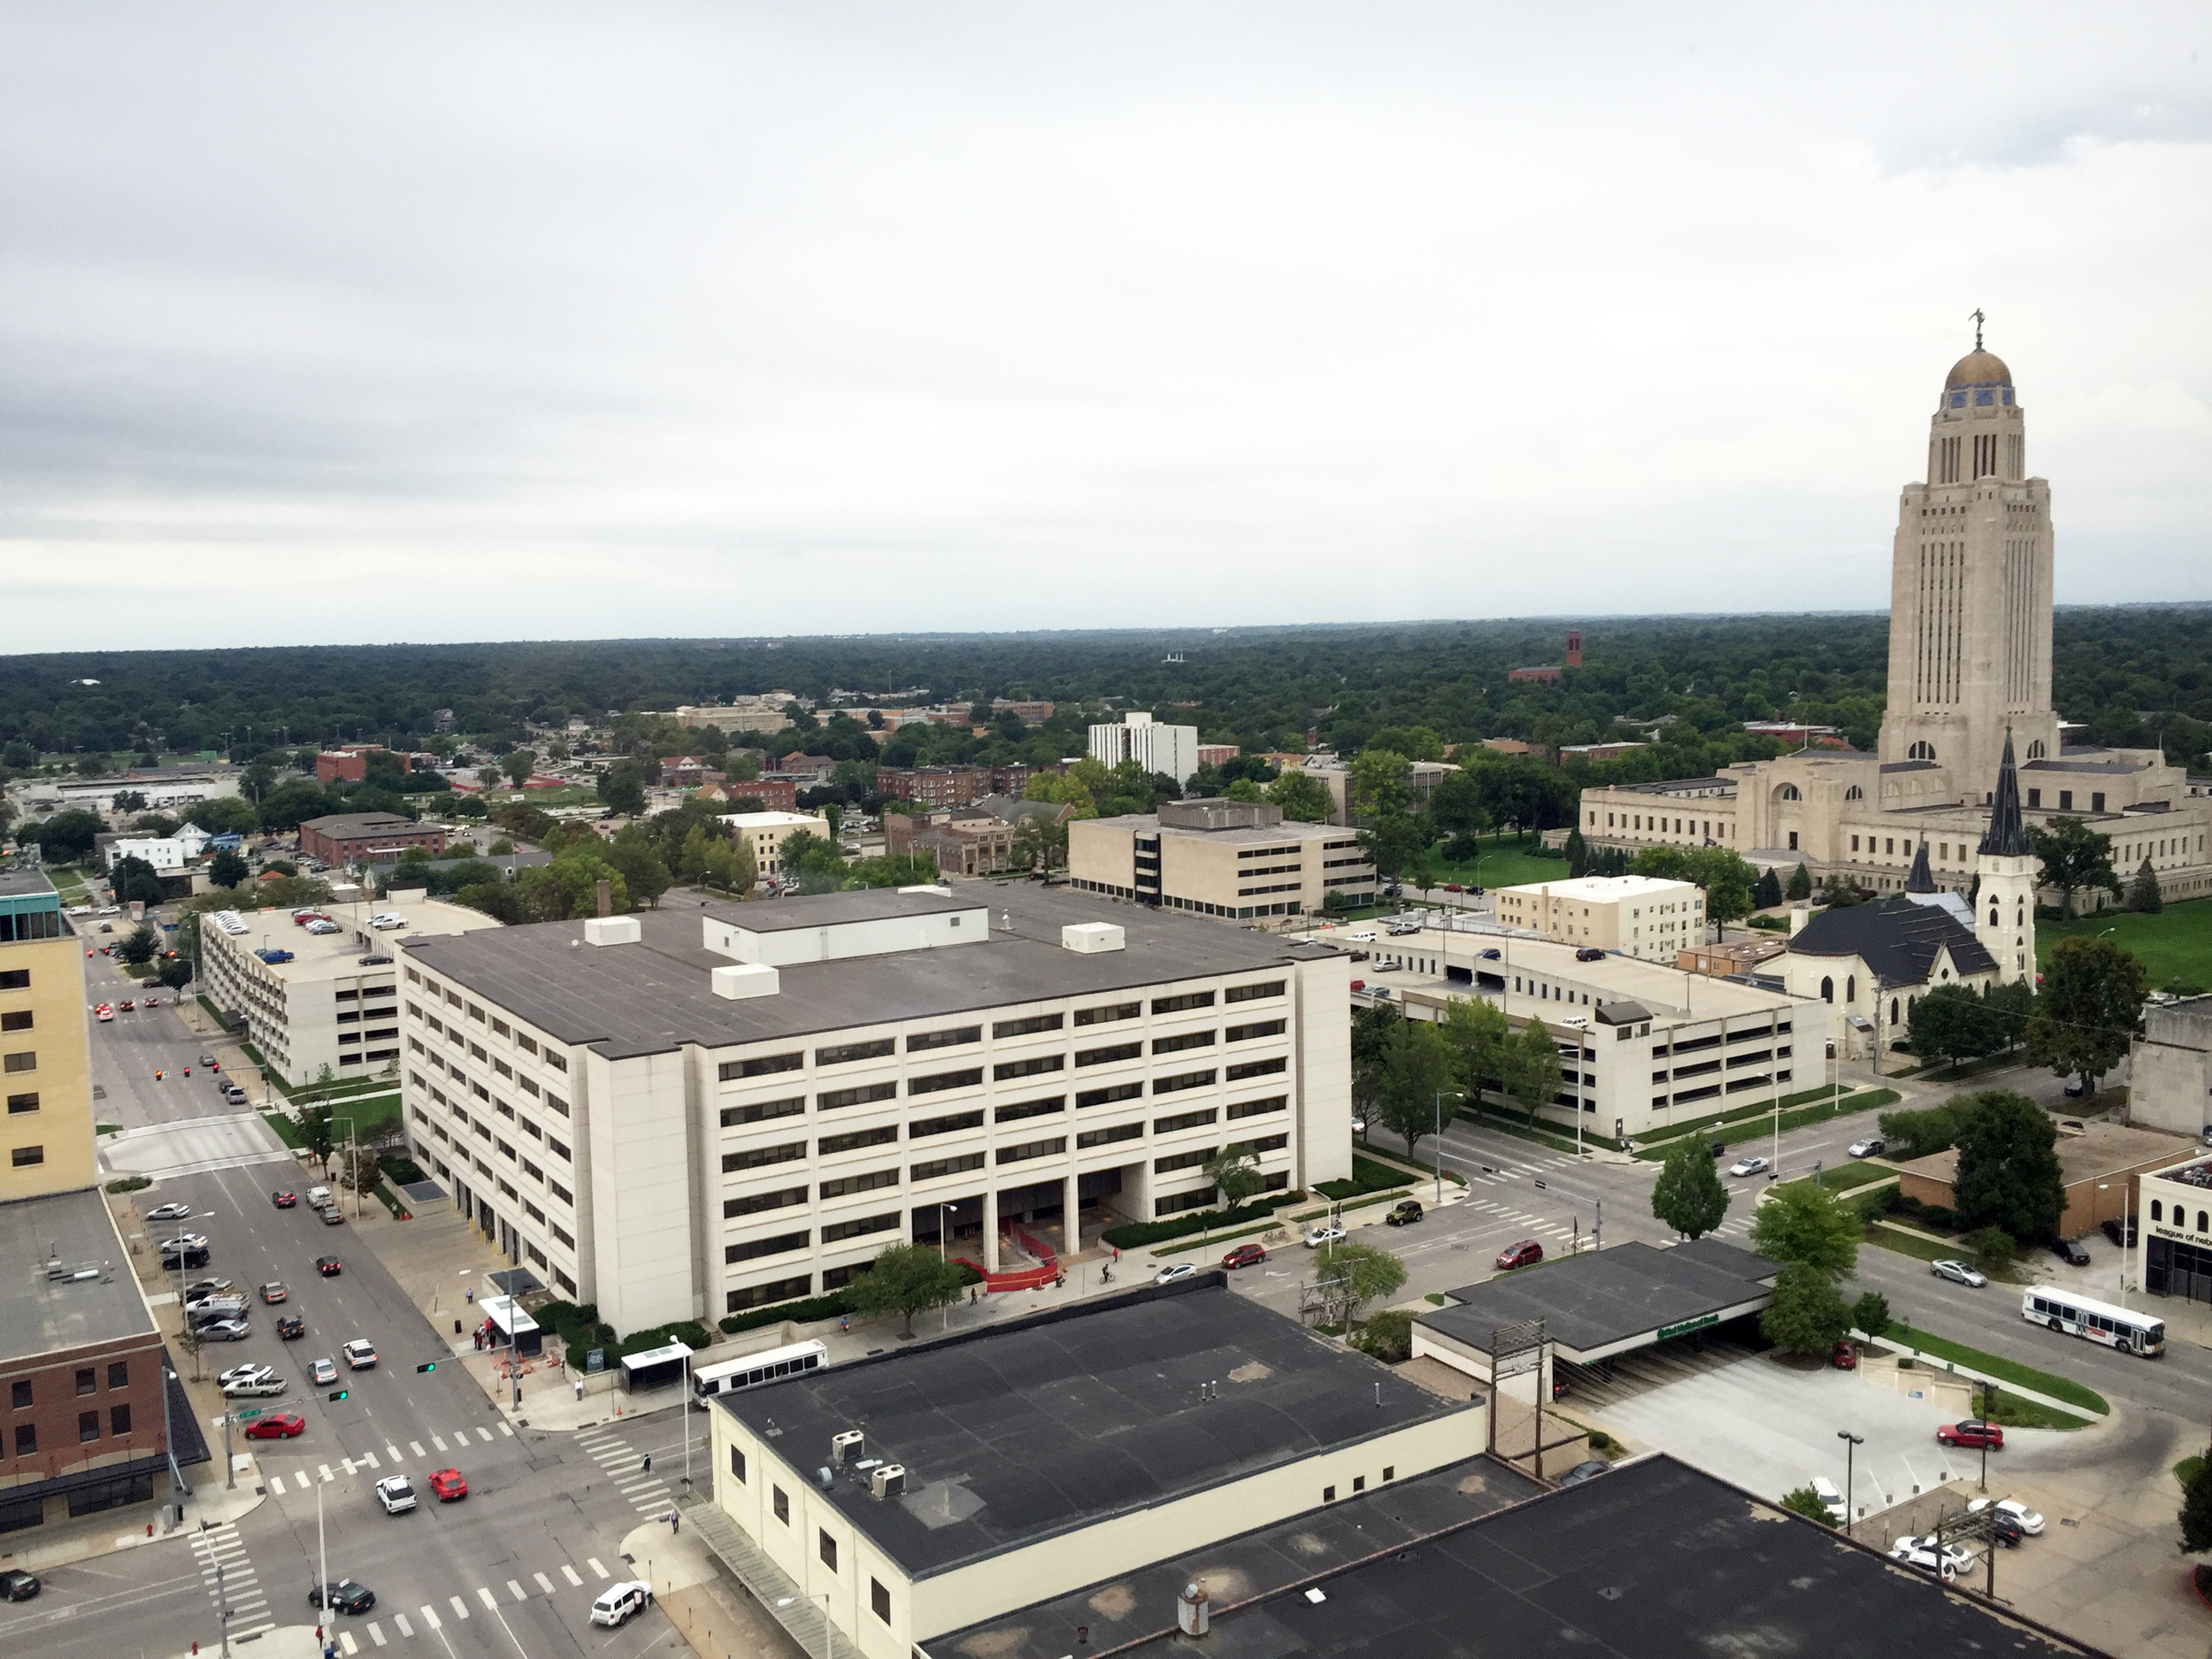 Overlooking Lincoln from the 20th Floor of the US Bank Building